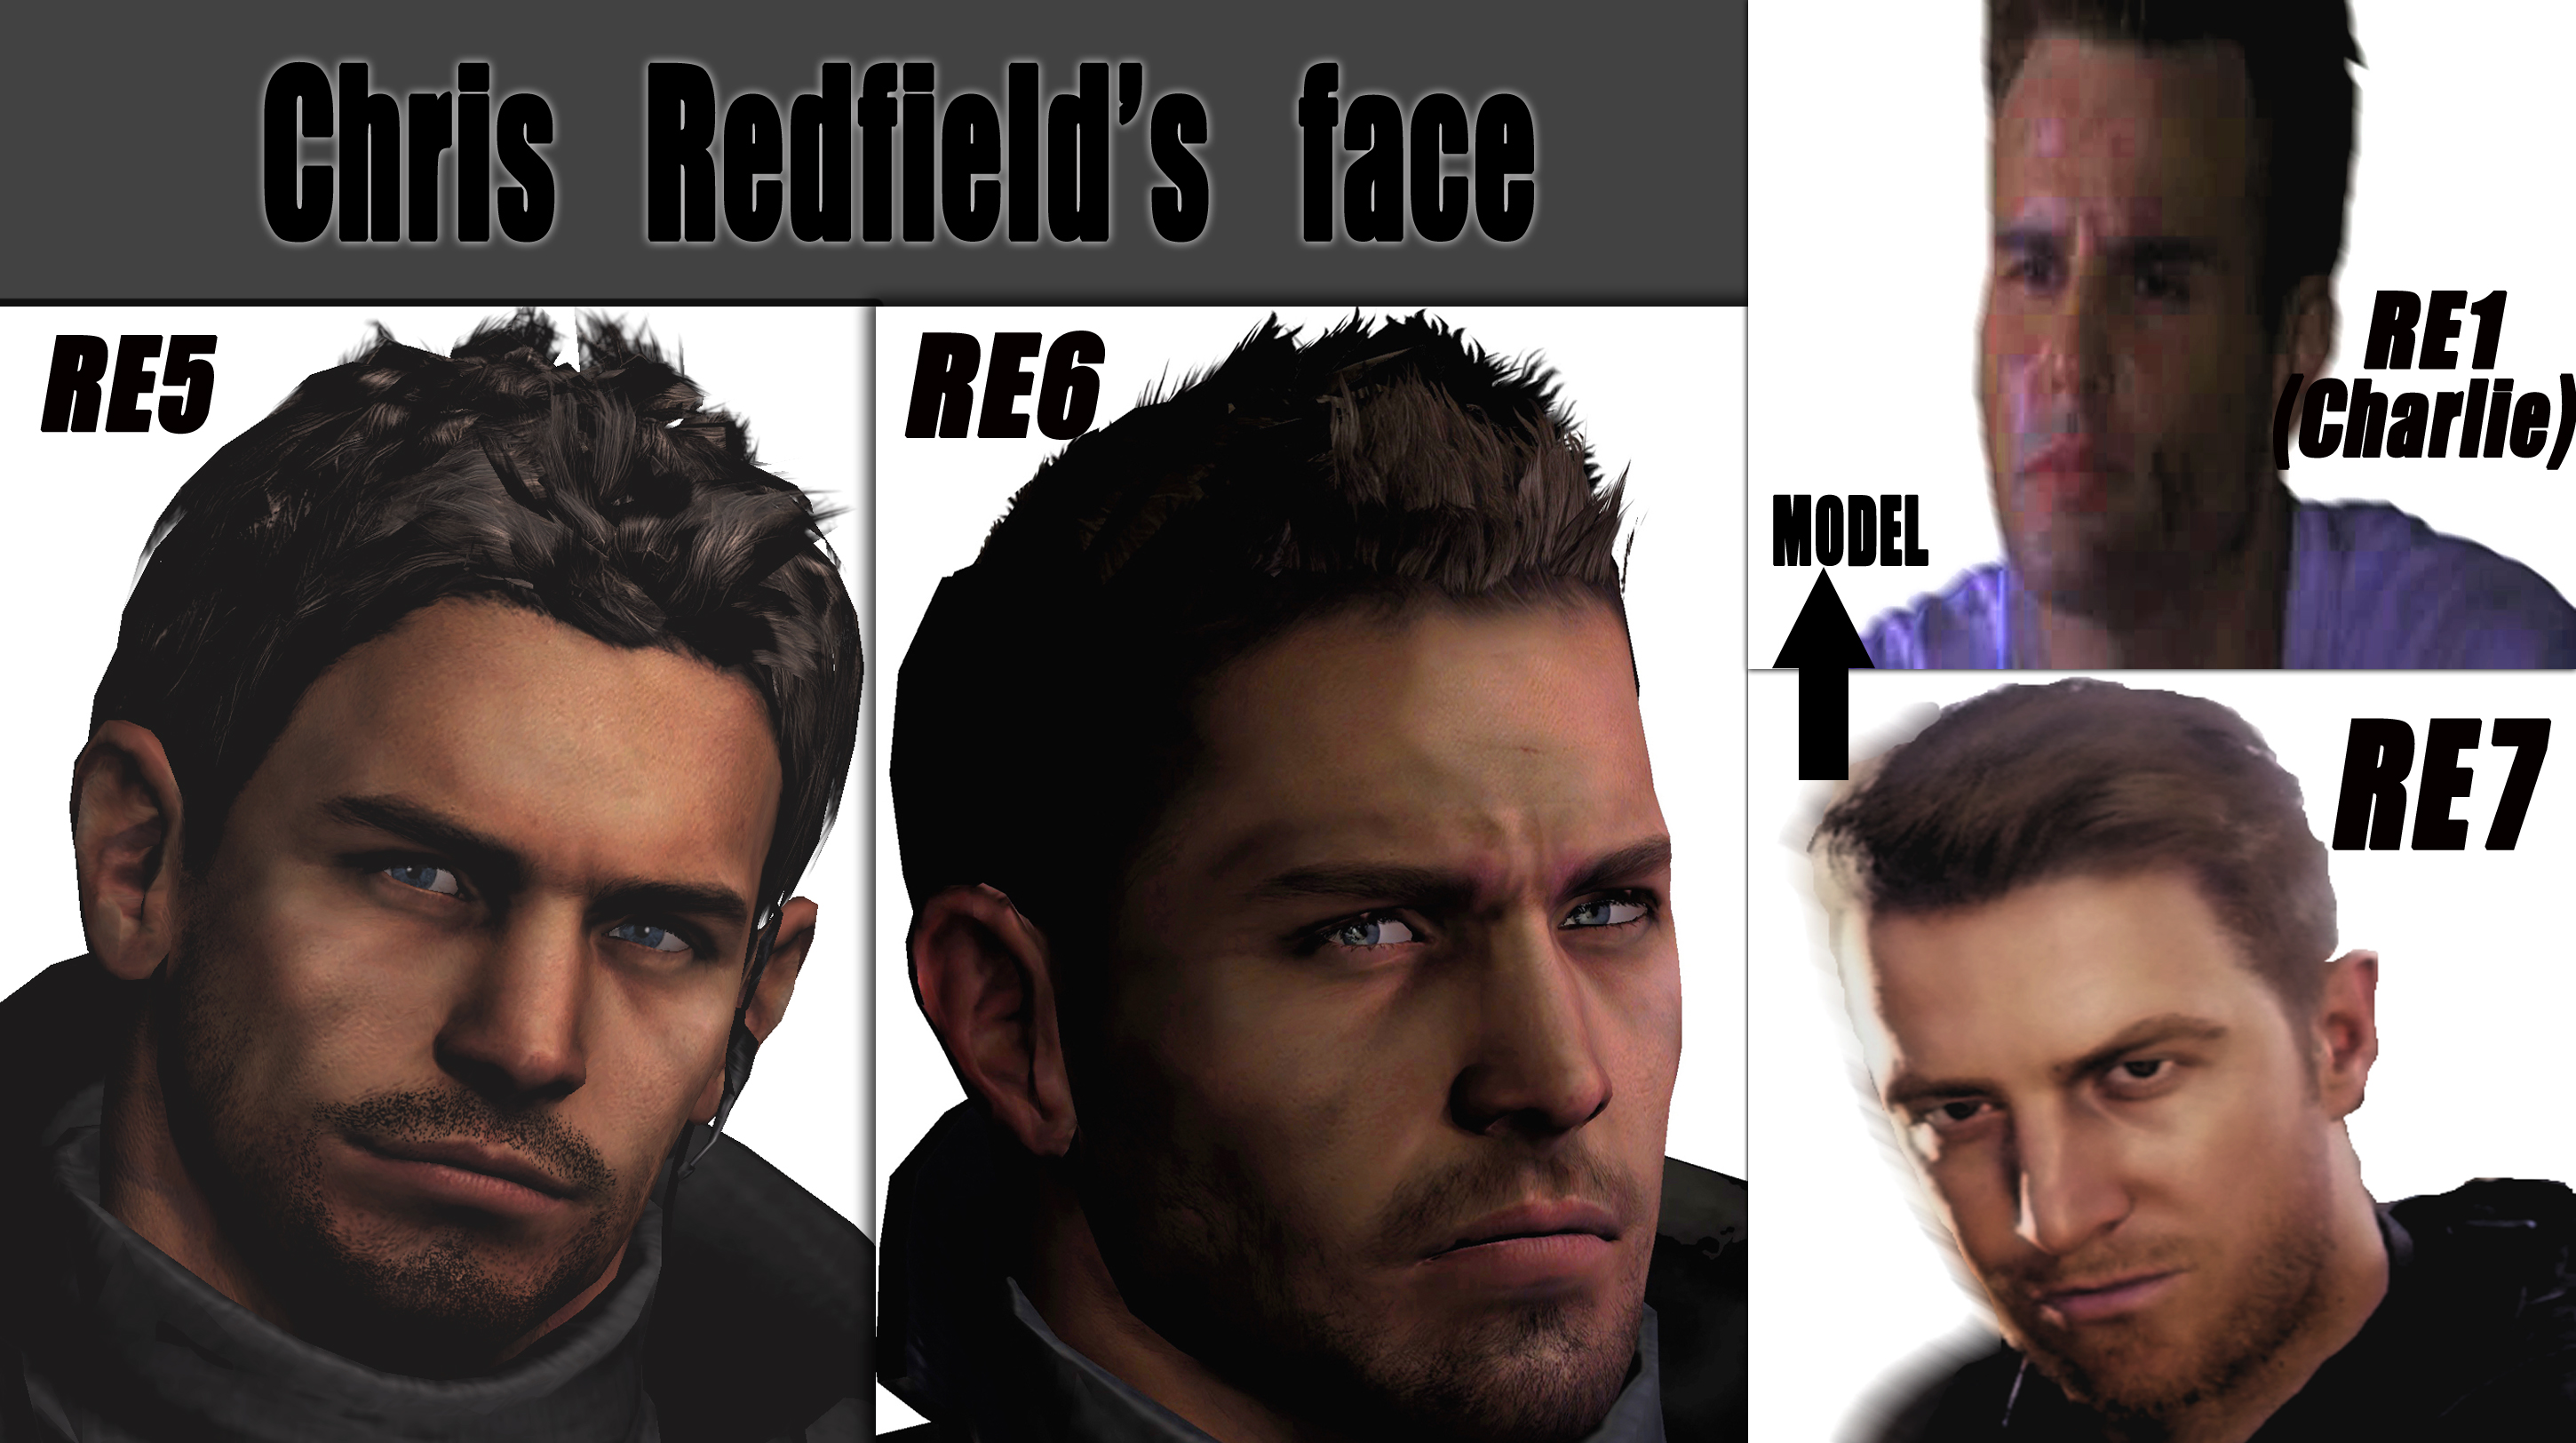 All The Persons Are The Same Guy Chris Redfield By